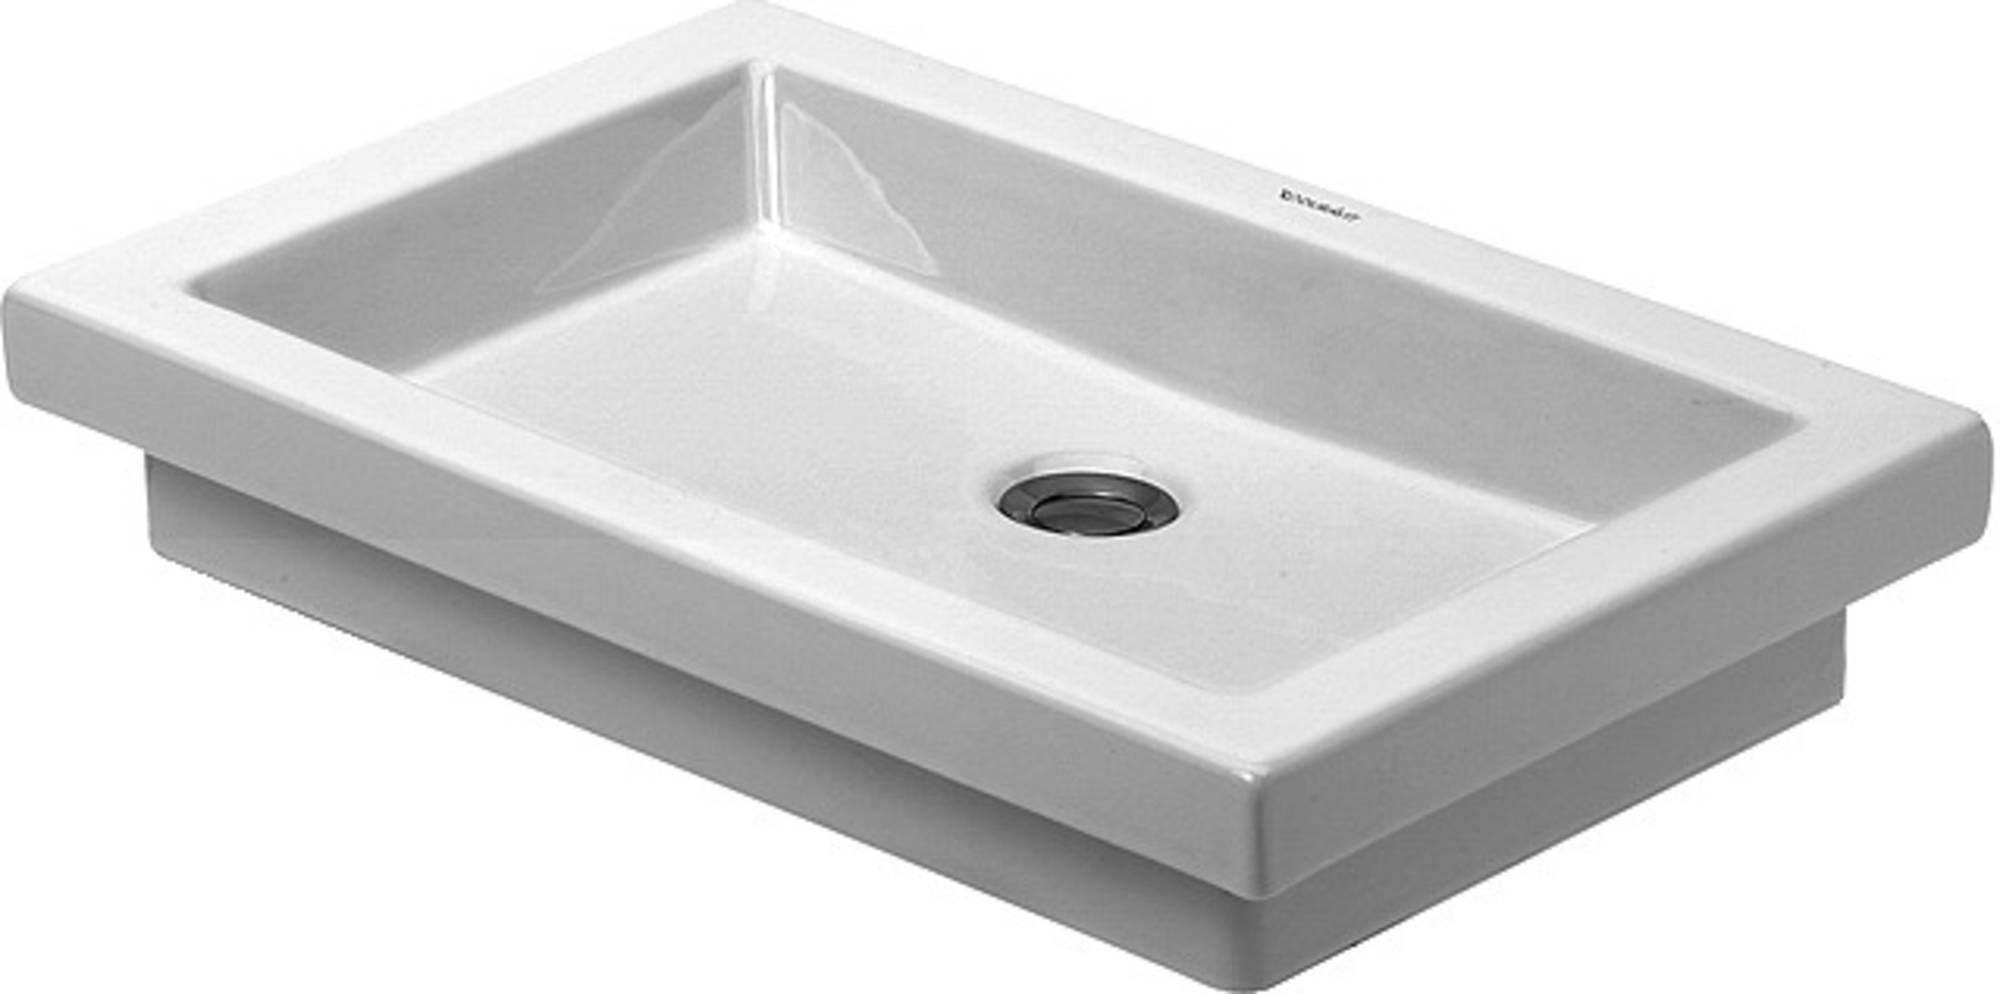 Duravit 2nd floor opzet wastafel 58x41,5 zonder overloop wonderglis, wit